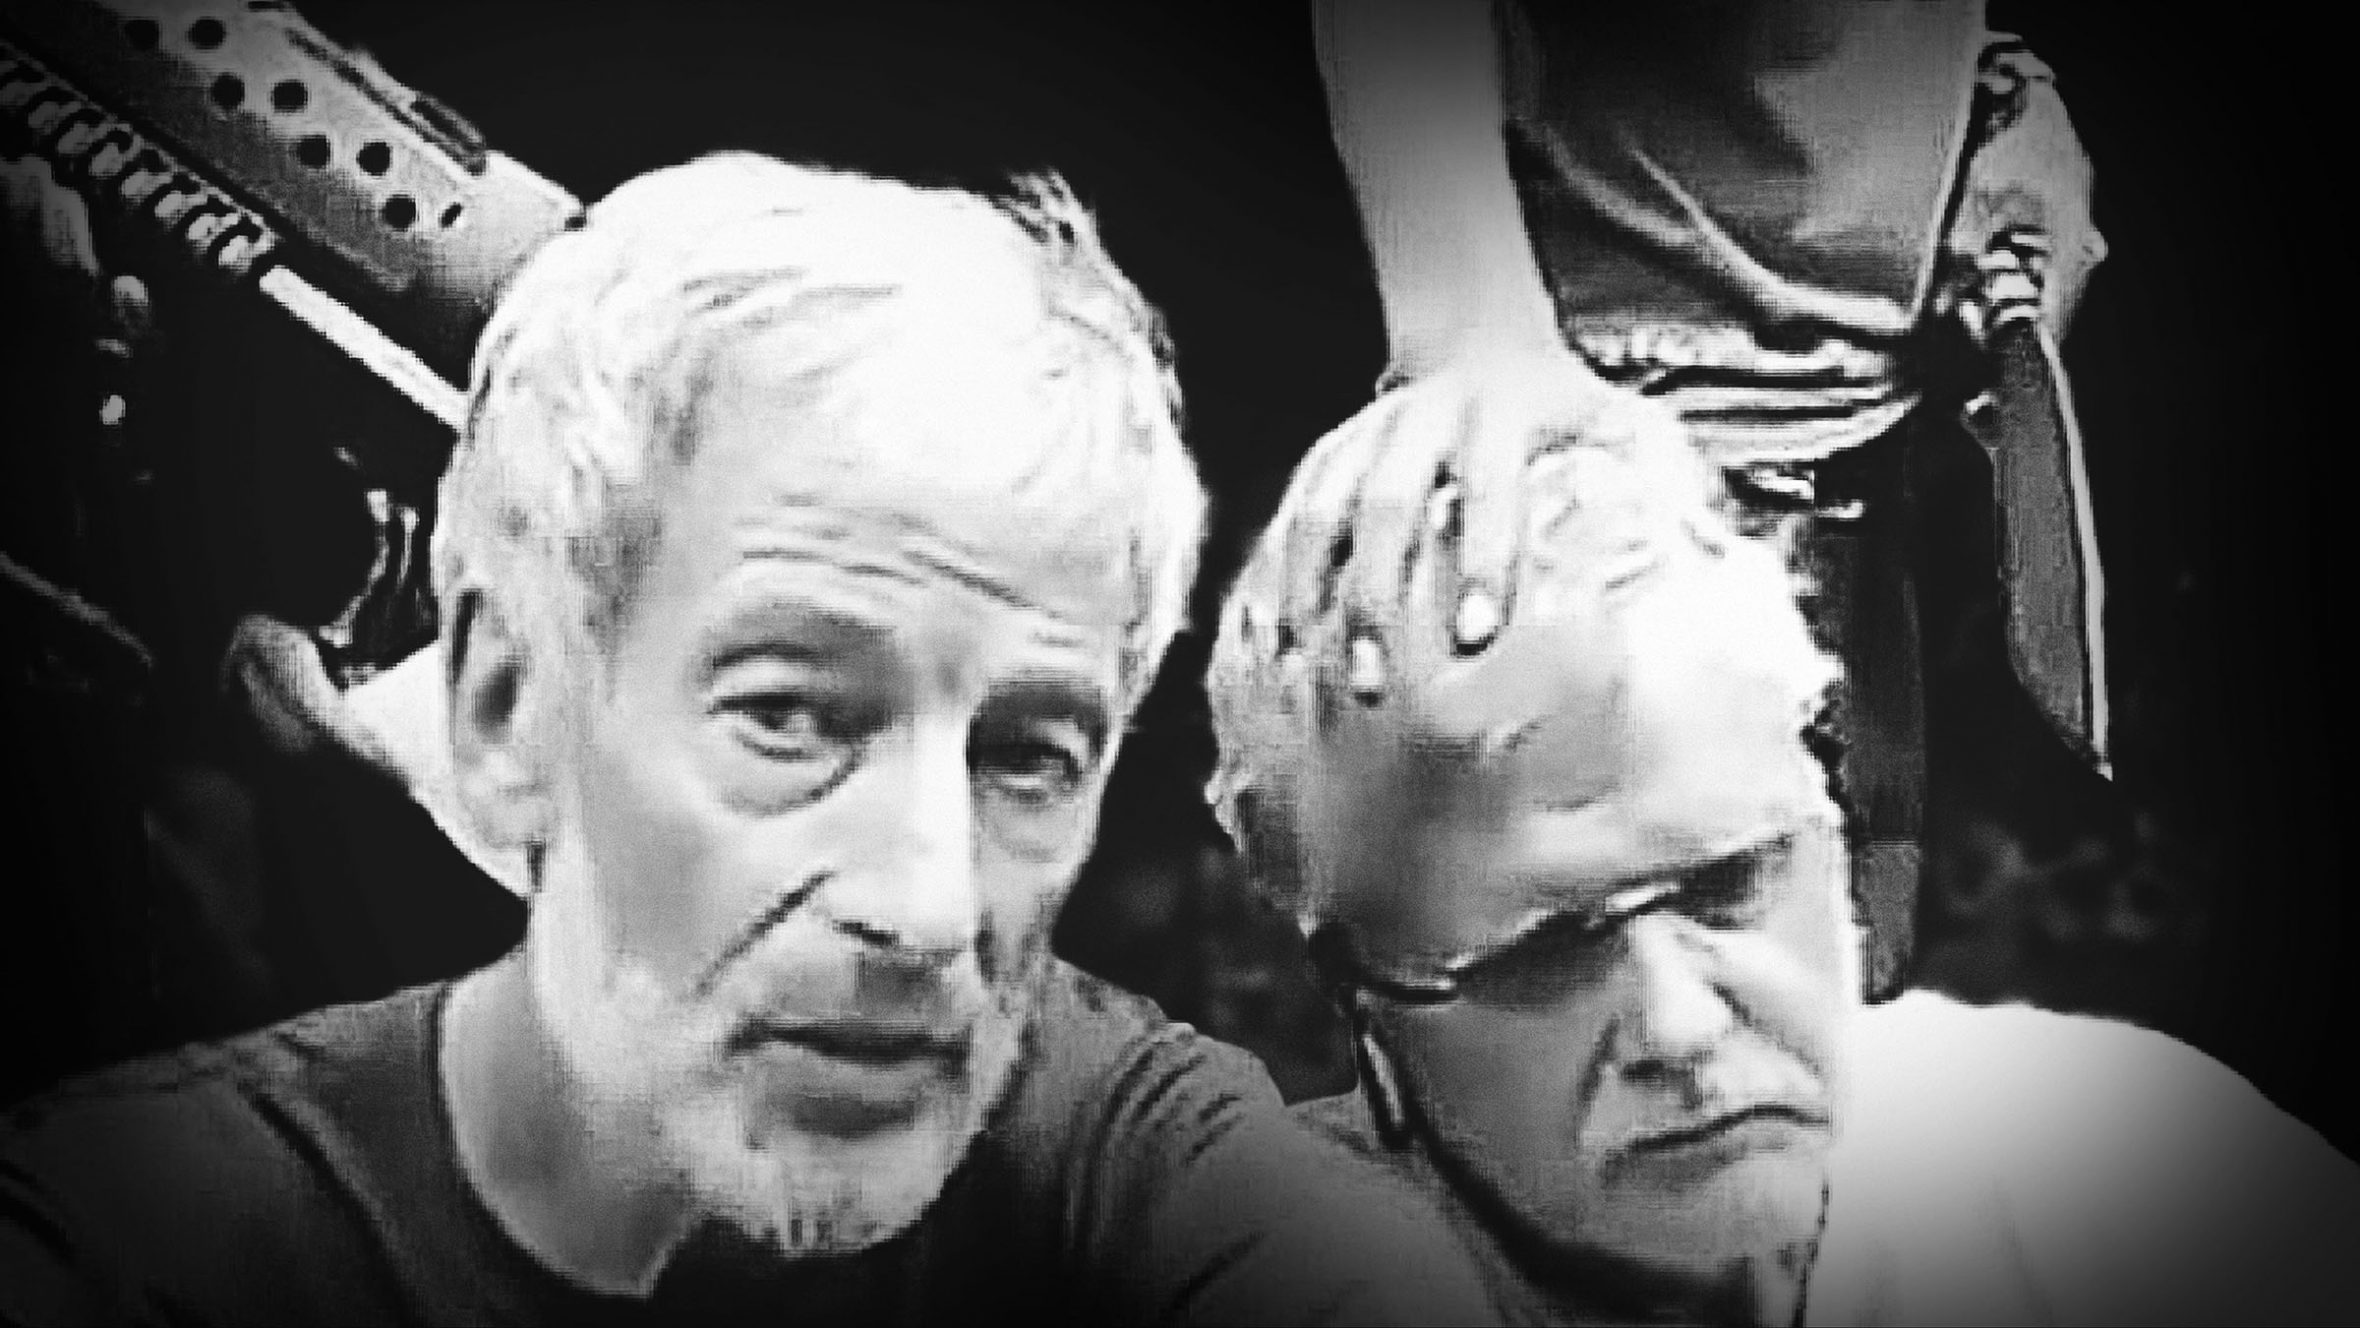 Robert Hall and John Ridsdel as they appeared in a kidnapping video by the Filipino militant group Abu Sayyaf